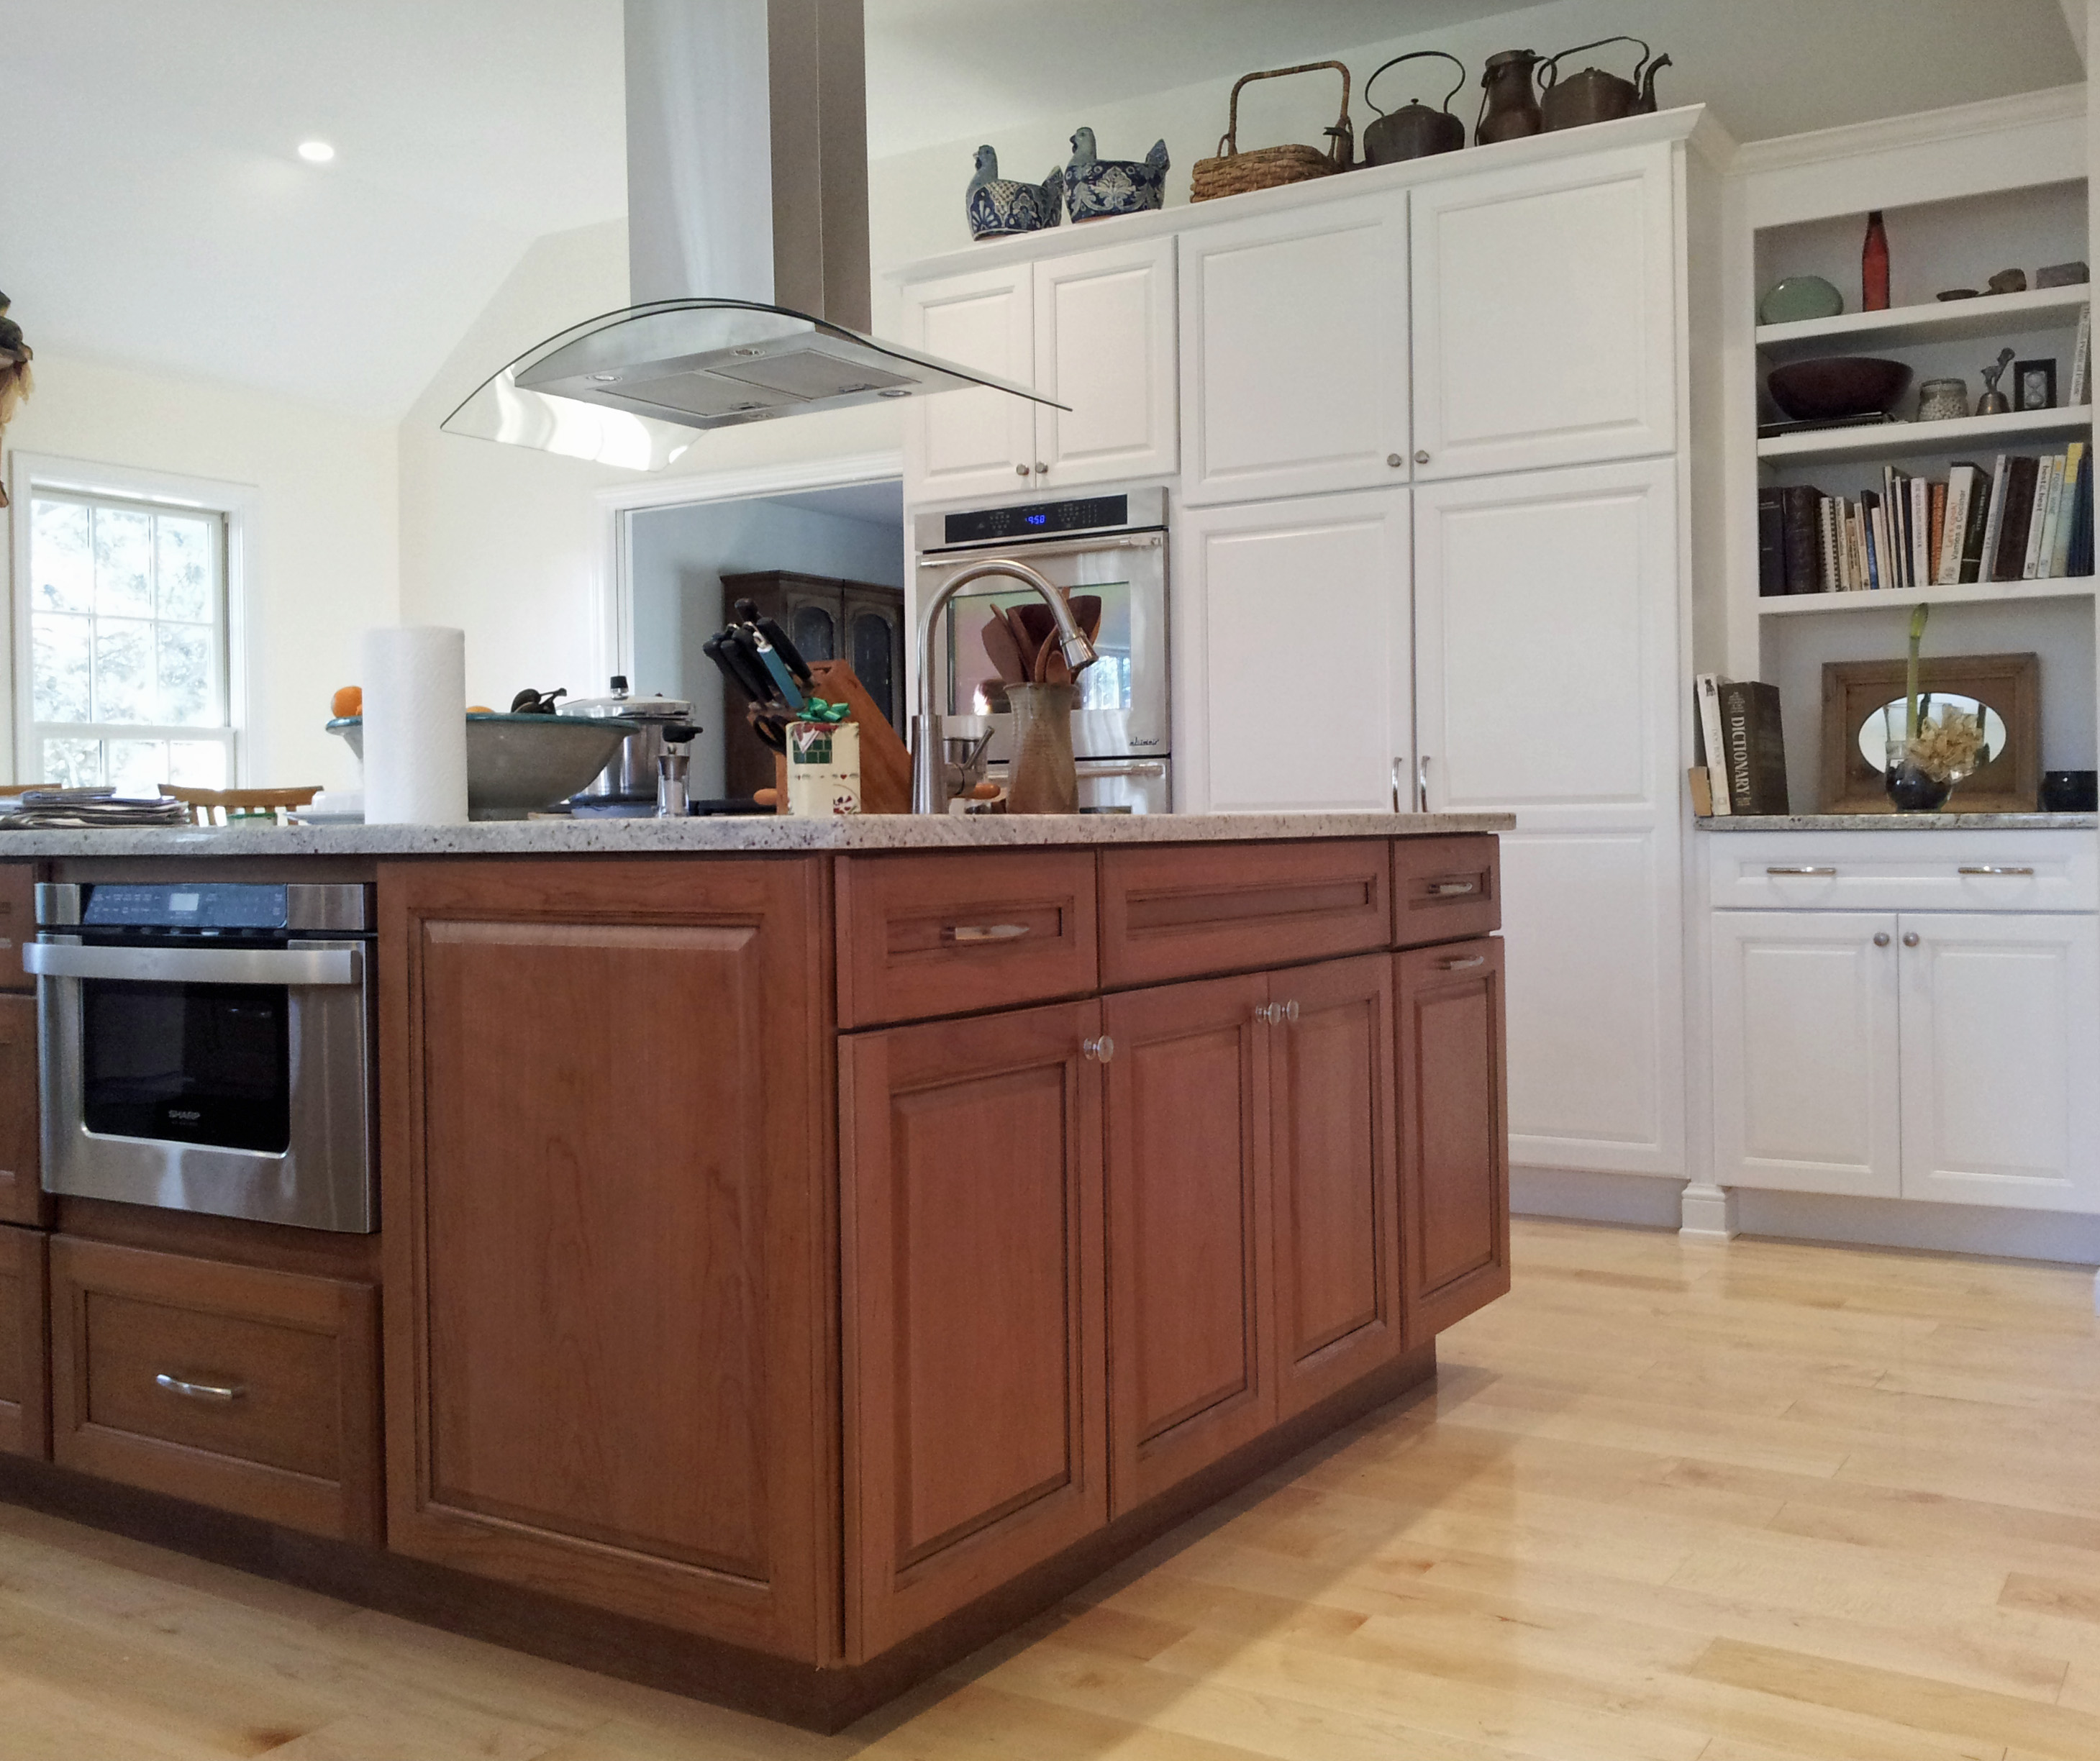 Beautiful stained full overlay Island cabinetry mixed with painted perimeter cabinetry